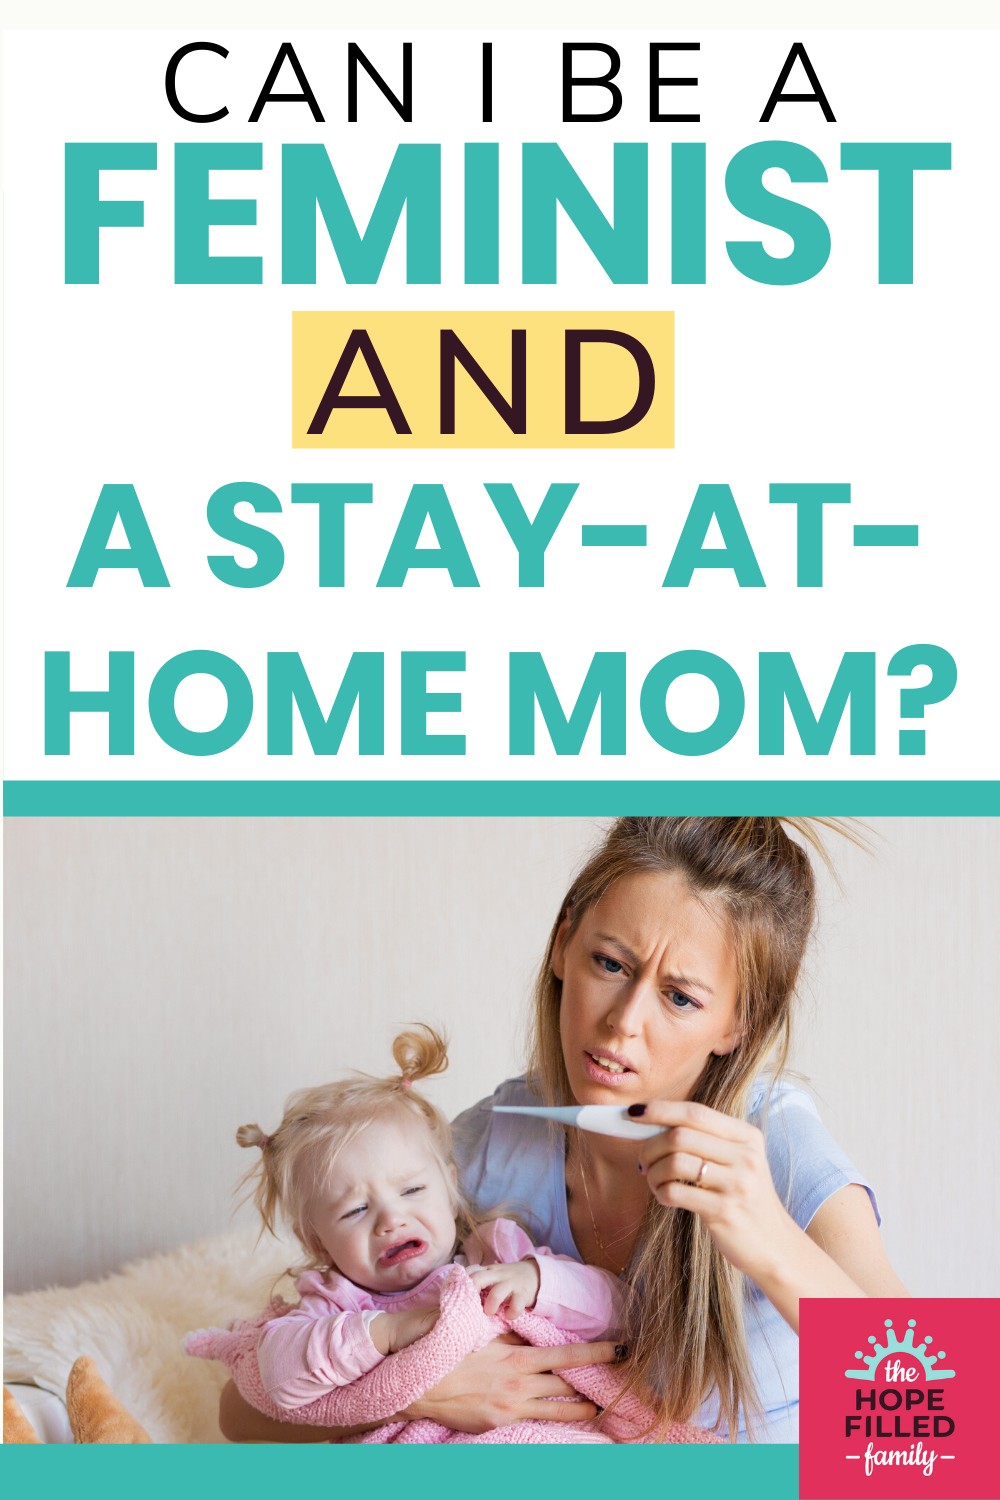 Can I be a feminist and a stay-at-home mom?